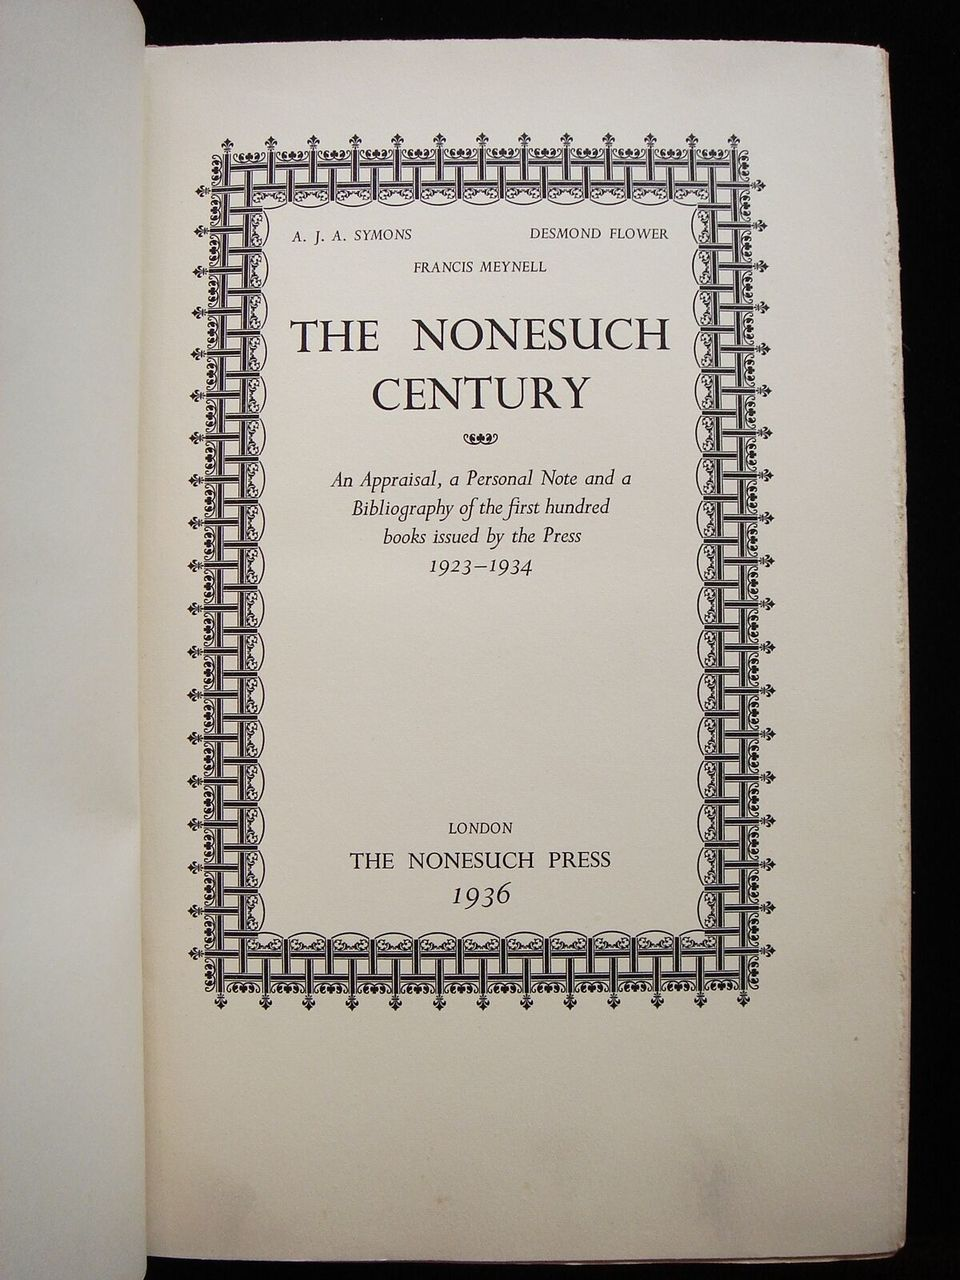 NONESUCH CENTURY -1936 Press History, F. Meynell ASL, Holbrook Jackson Review